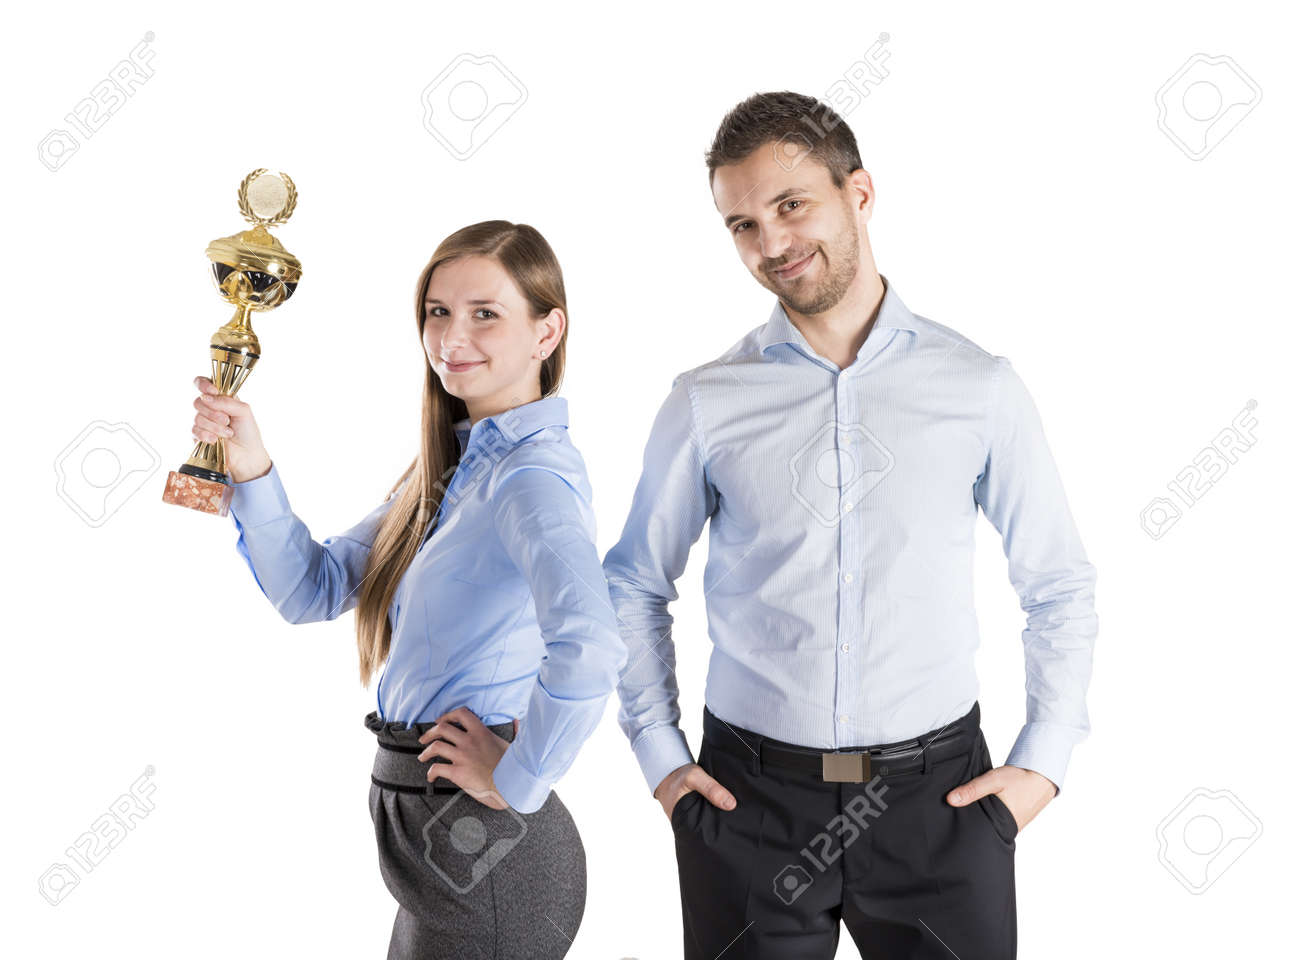 Successful business man and woman are celebrating on isolated white background Stock Photo - 16880957